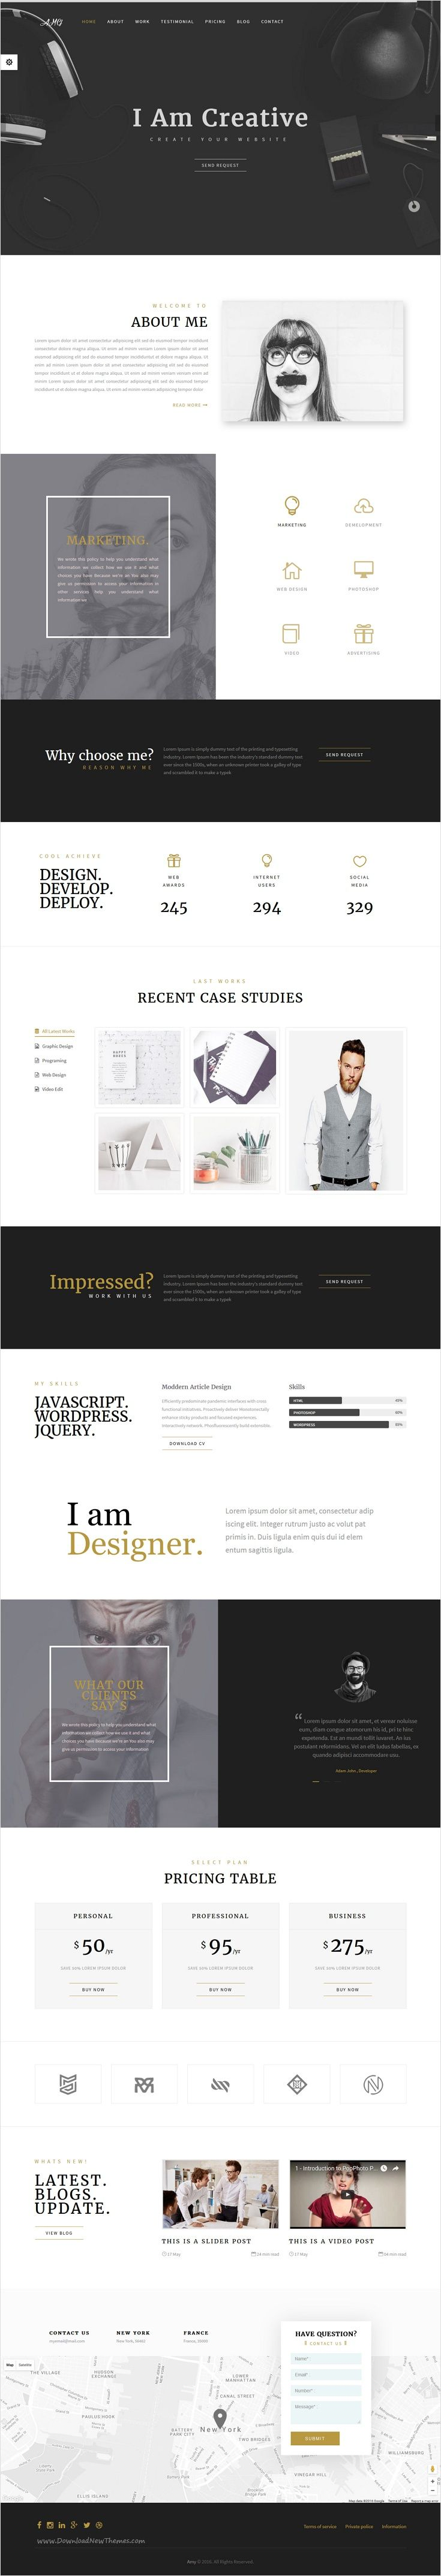 Amy responsive corporate business portfolio template amy responsive corporate business portfolio template cheaphphosting Image collections